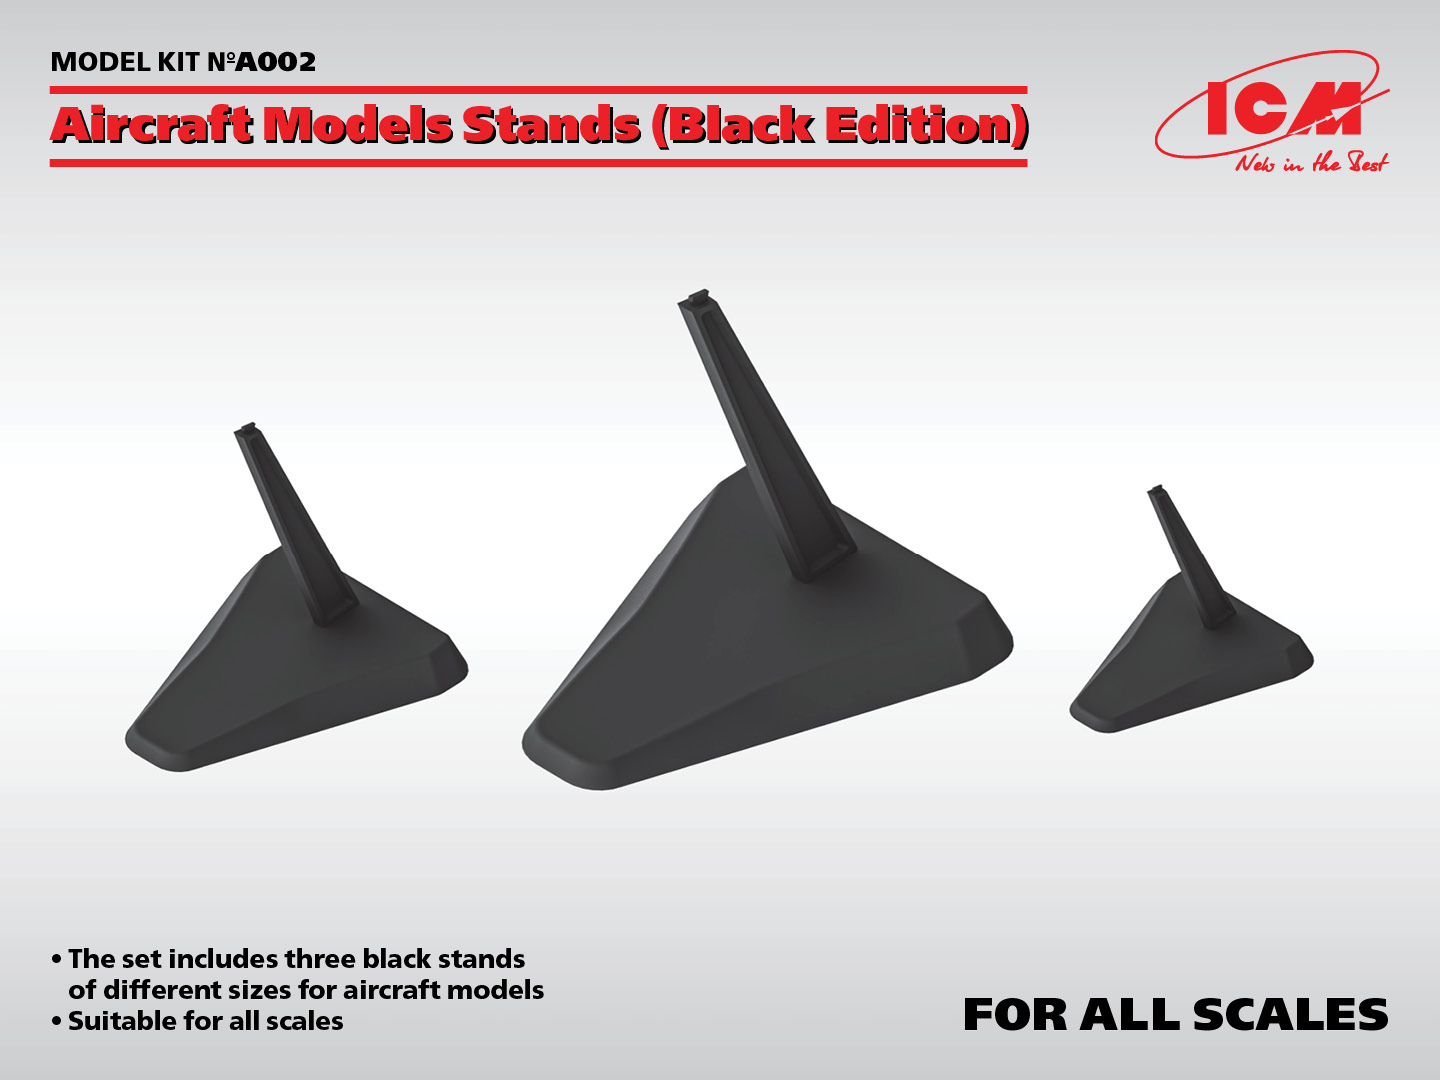 ICM Aircraft Models Stands (Black Edition)